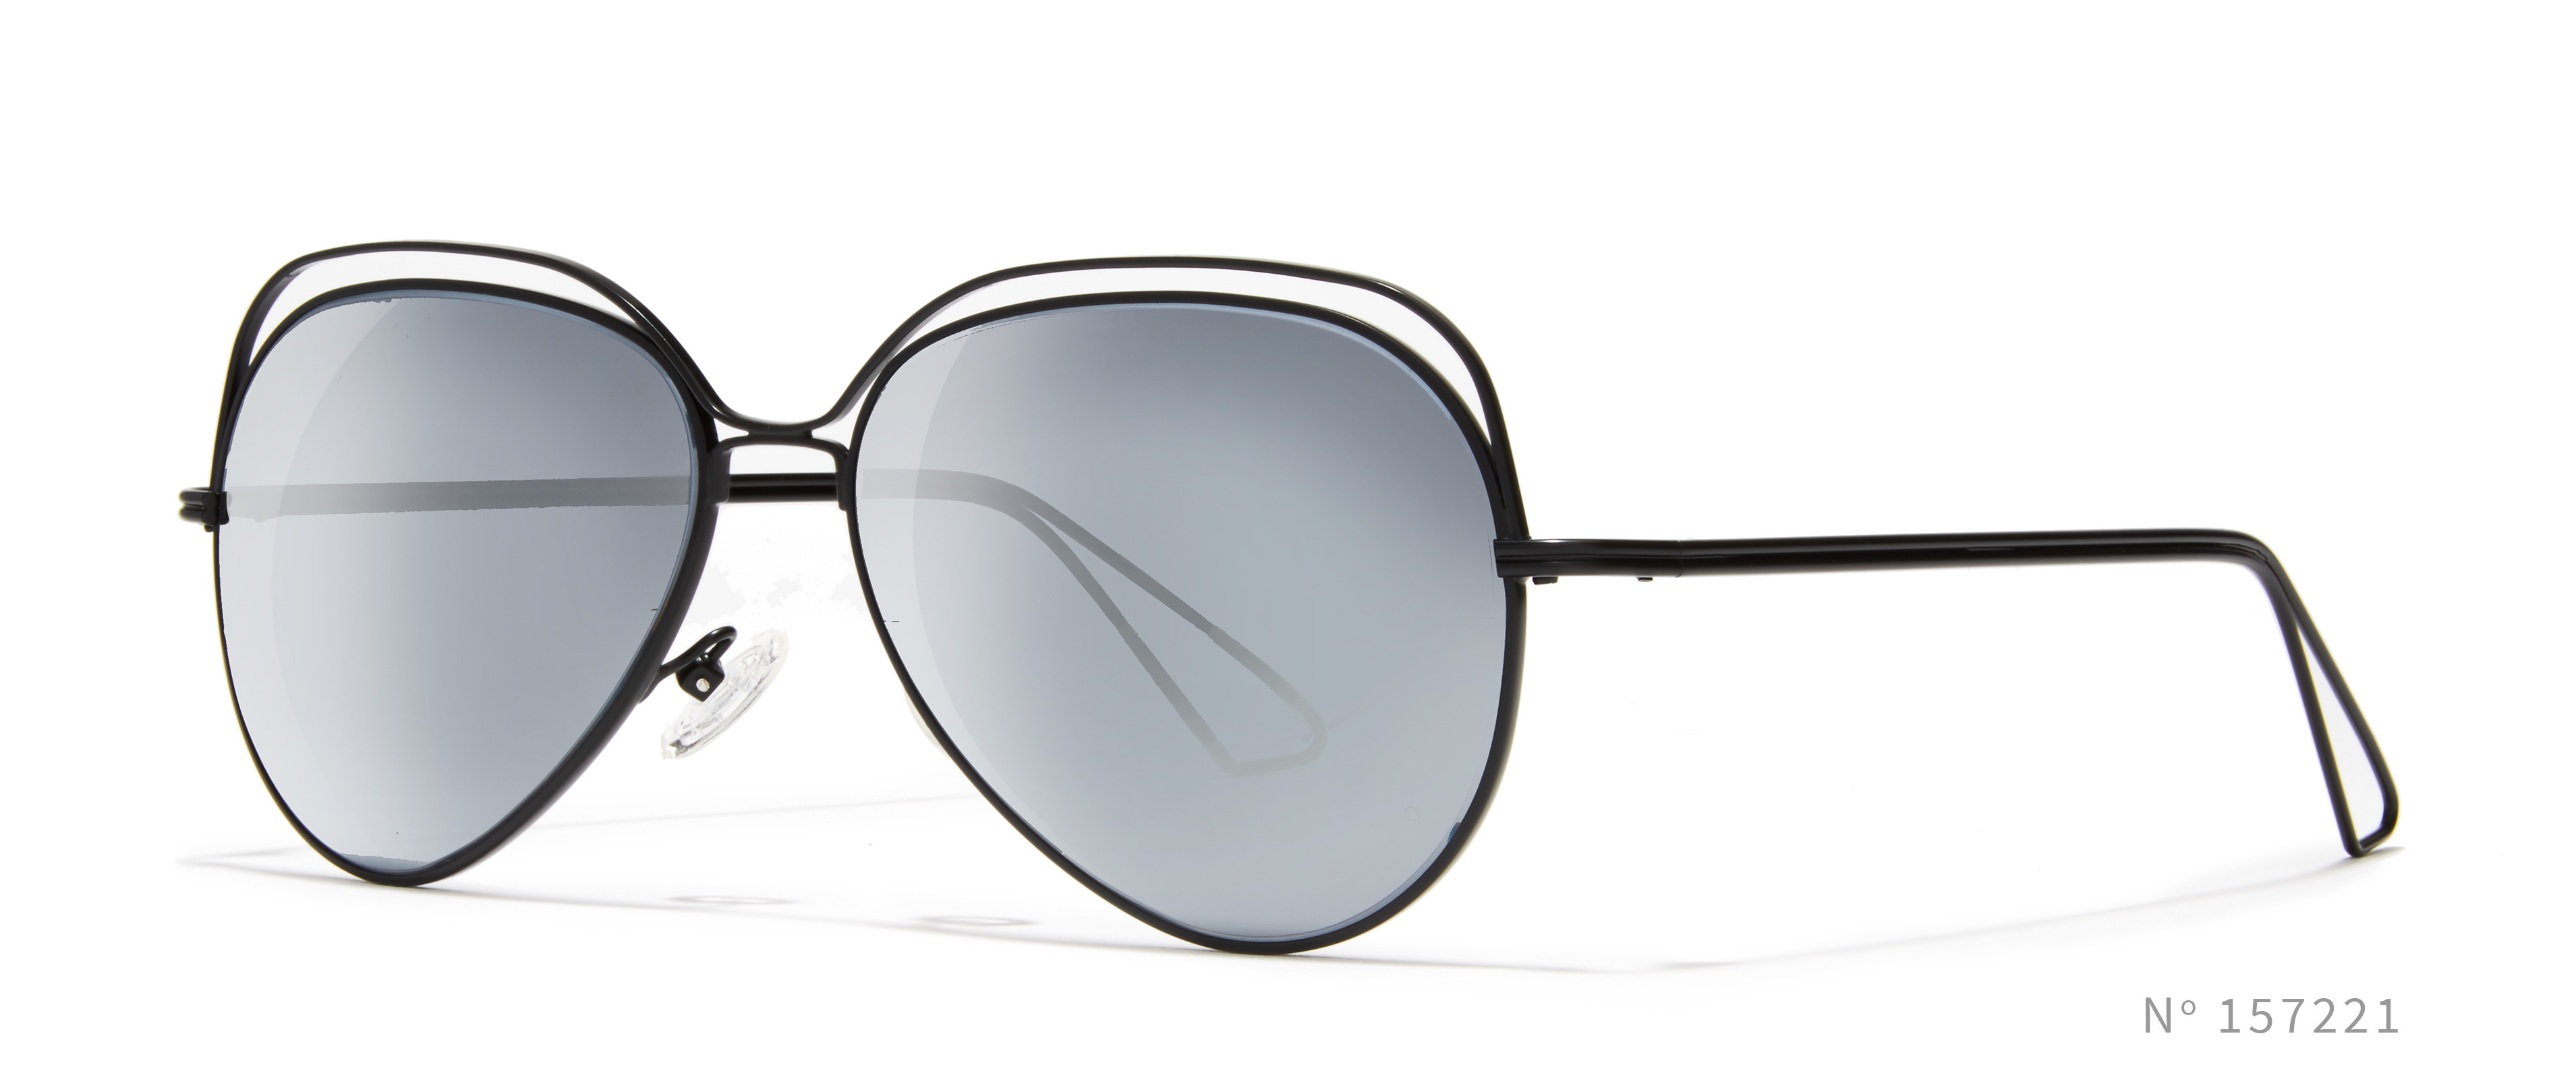 Black Wireframe Aviator Sunglasses